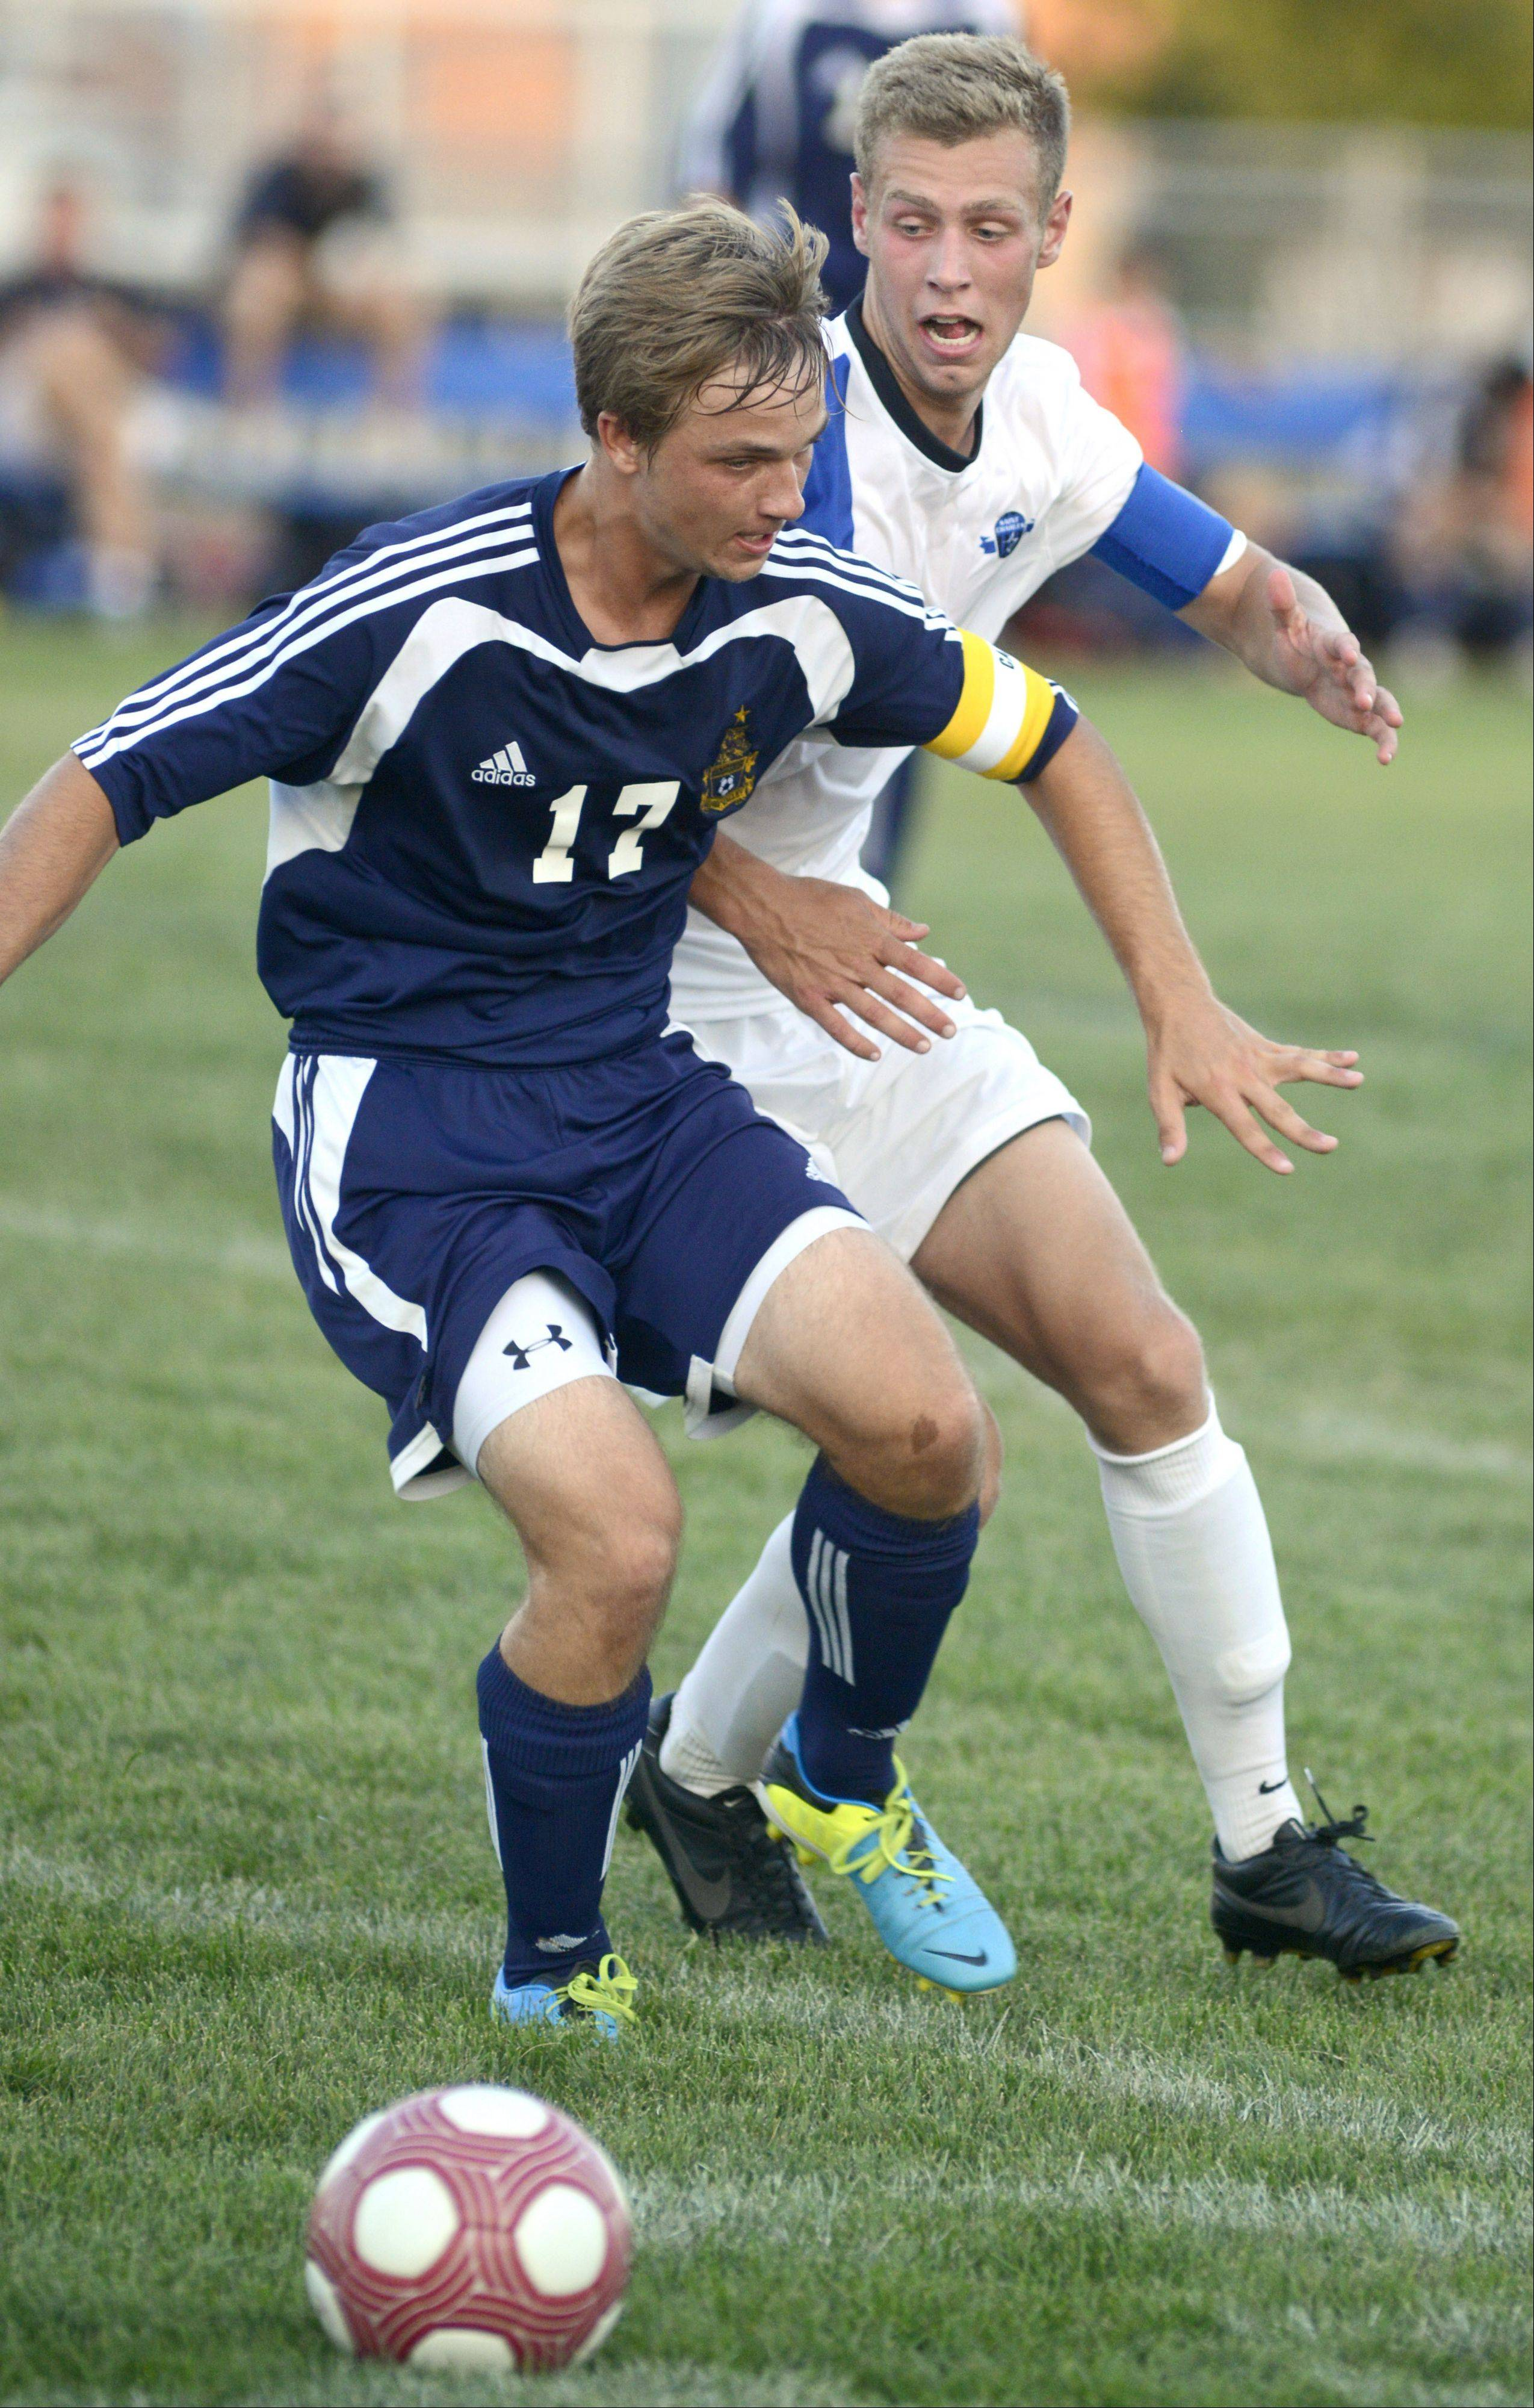 Neuqua Valley's Nick Castelvecchi fights off St. Charles North's Phillip LeGare in the first half on Tuesday, August 27.